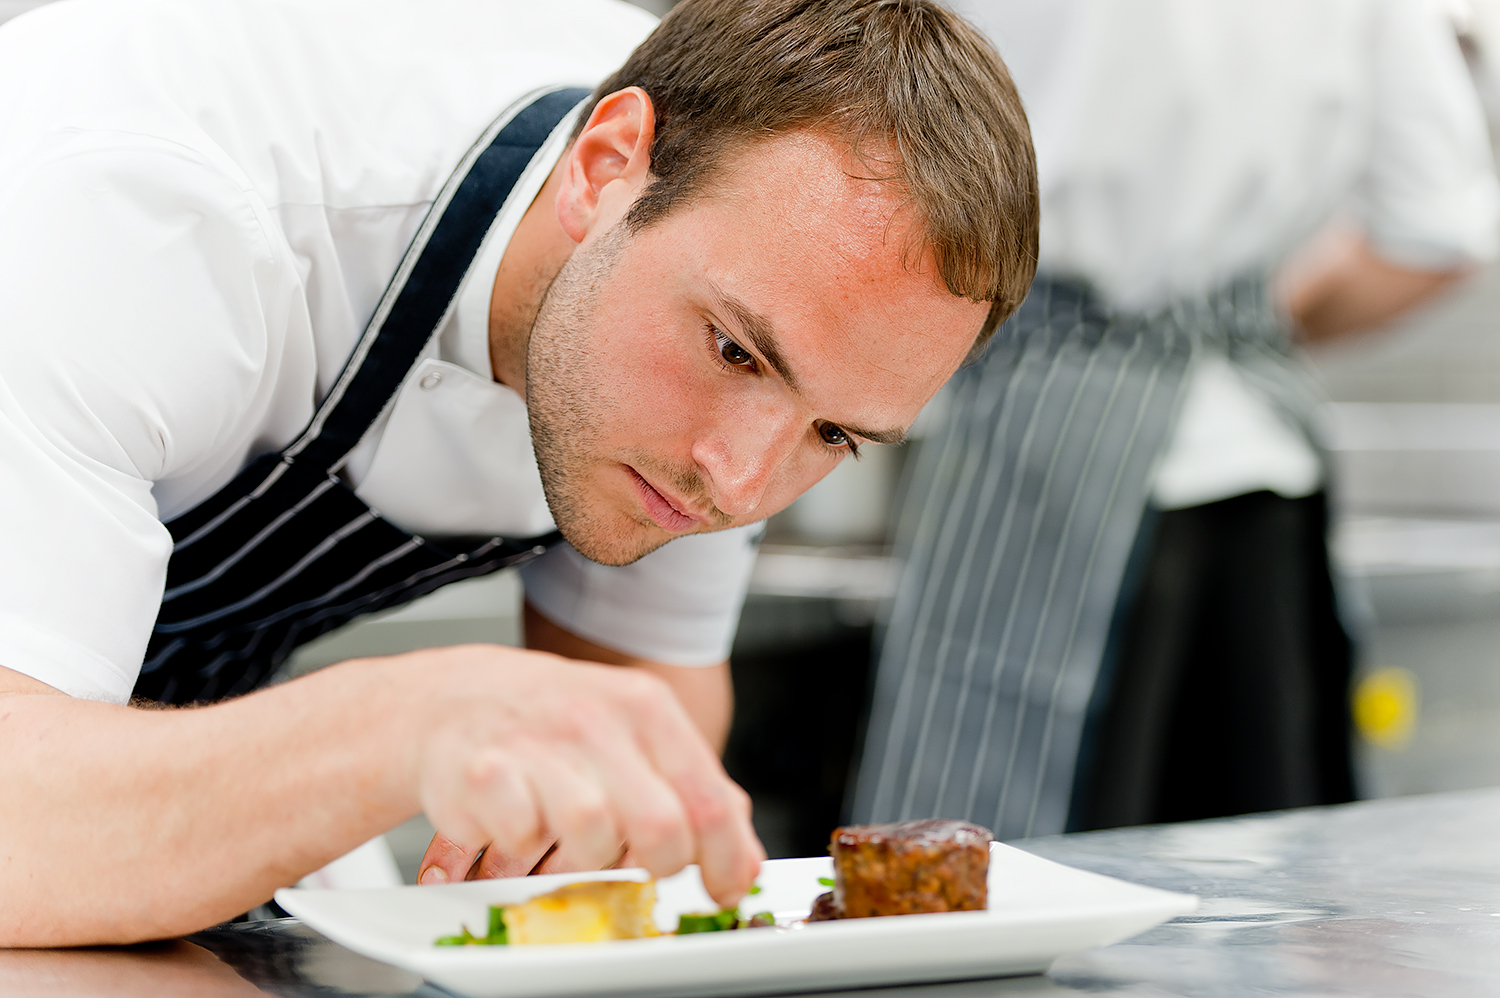 lifestyle-photography-dorset-kings-college-events-chef.jpg